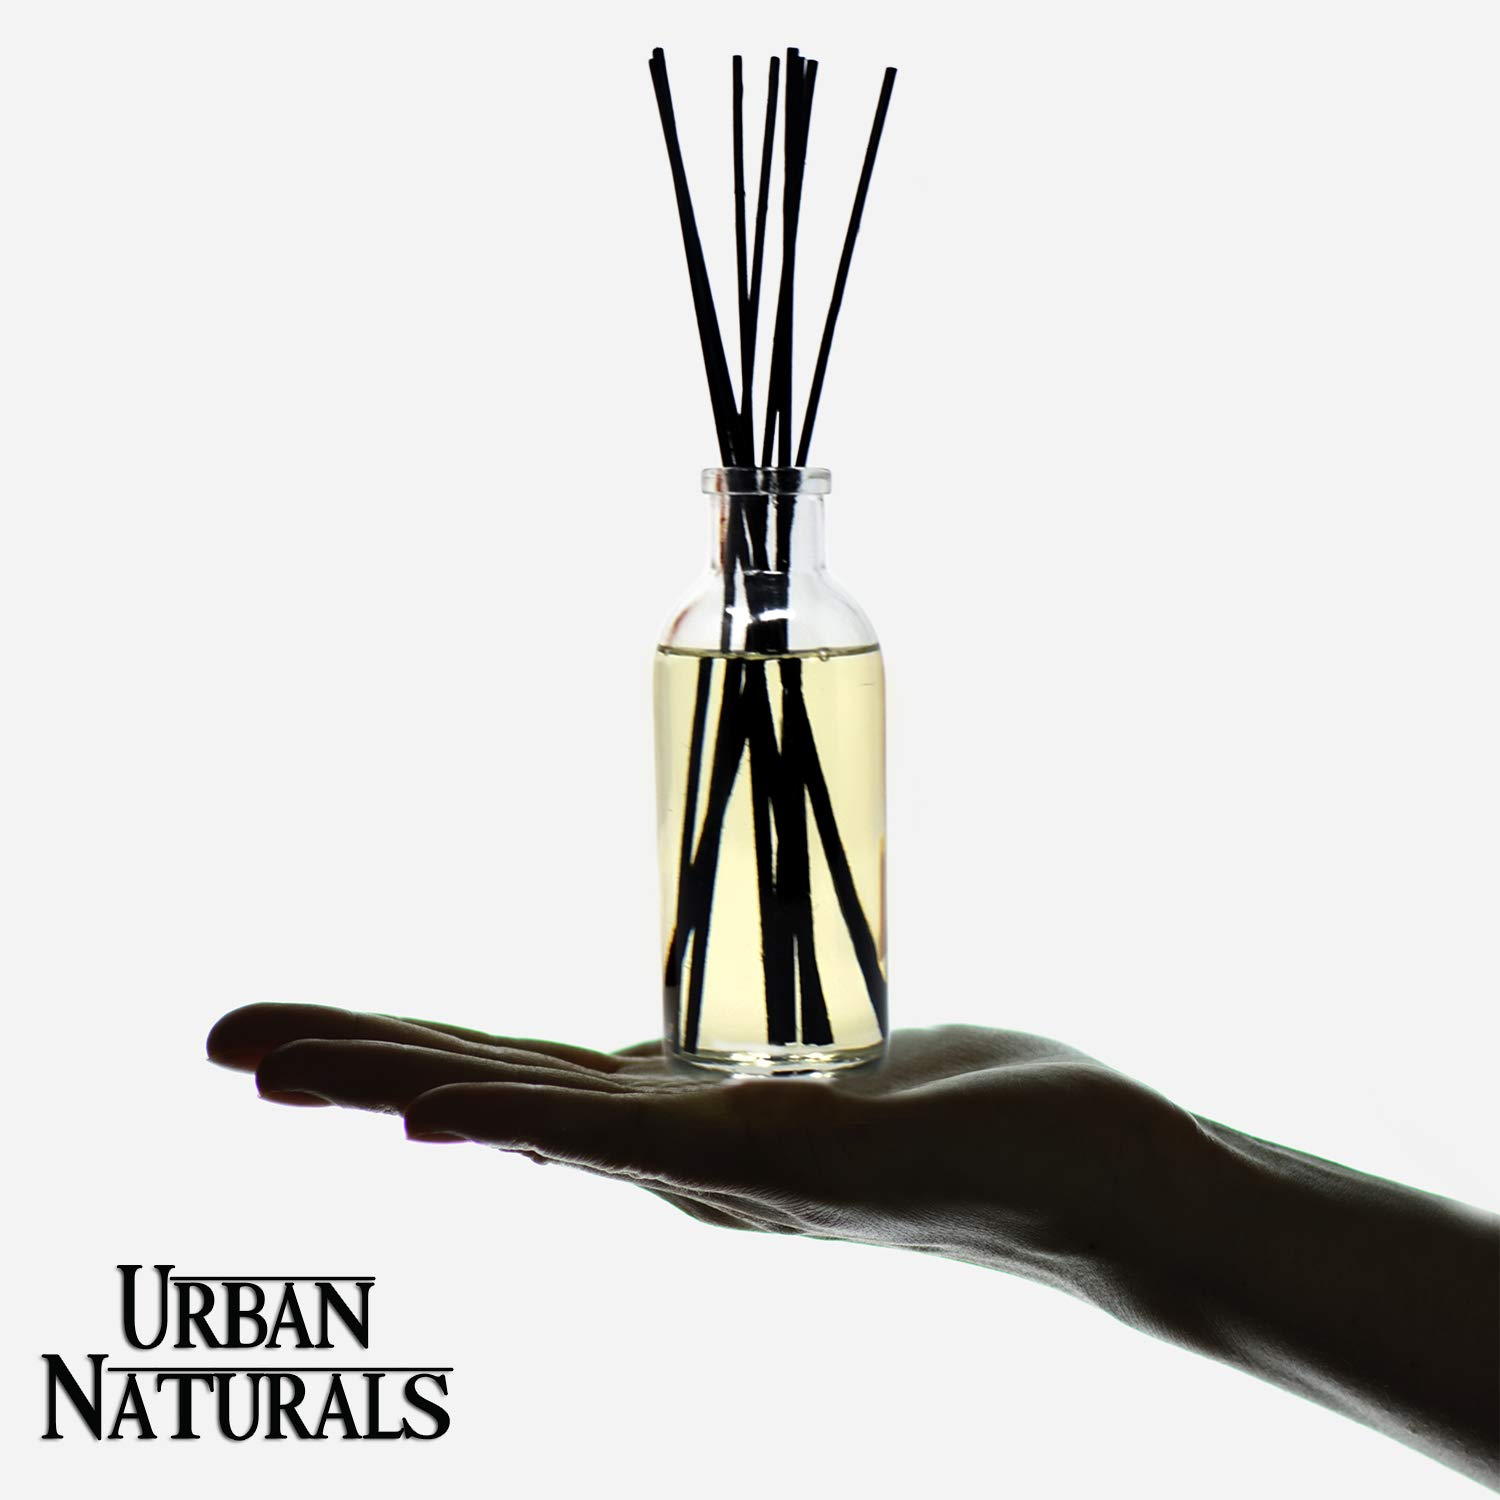 Urban Naturals Stress Relief Eucalyptus Spearmint Reed Diffuser Oil Refill | Fill Your own DIY Diffuser Bottle! Includes Replacement Reed Sticks by Urban Naturals (Image #5)